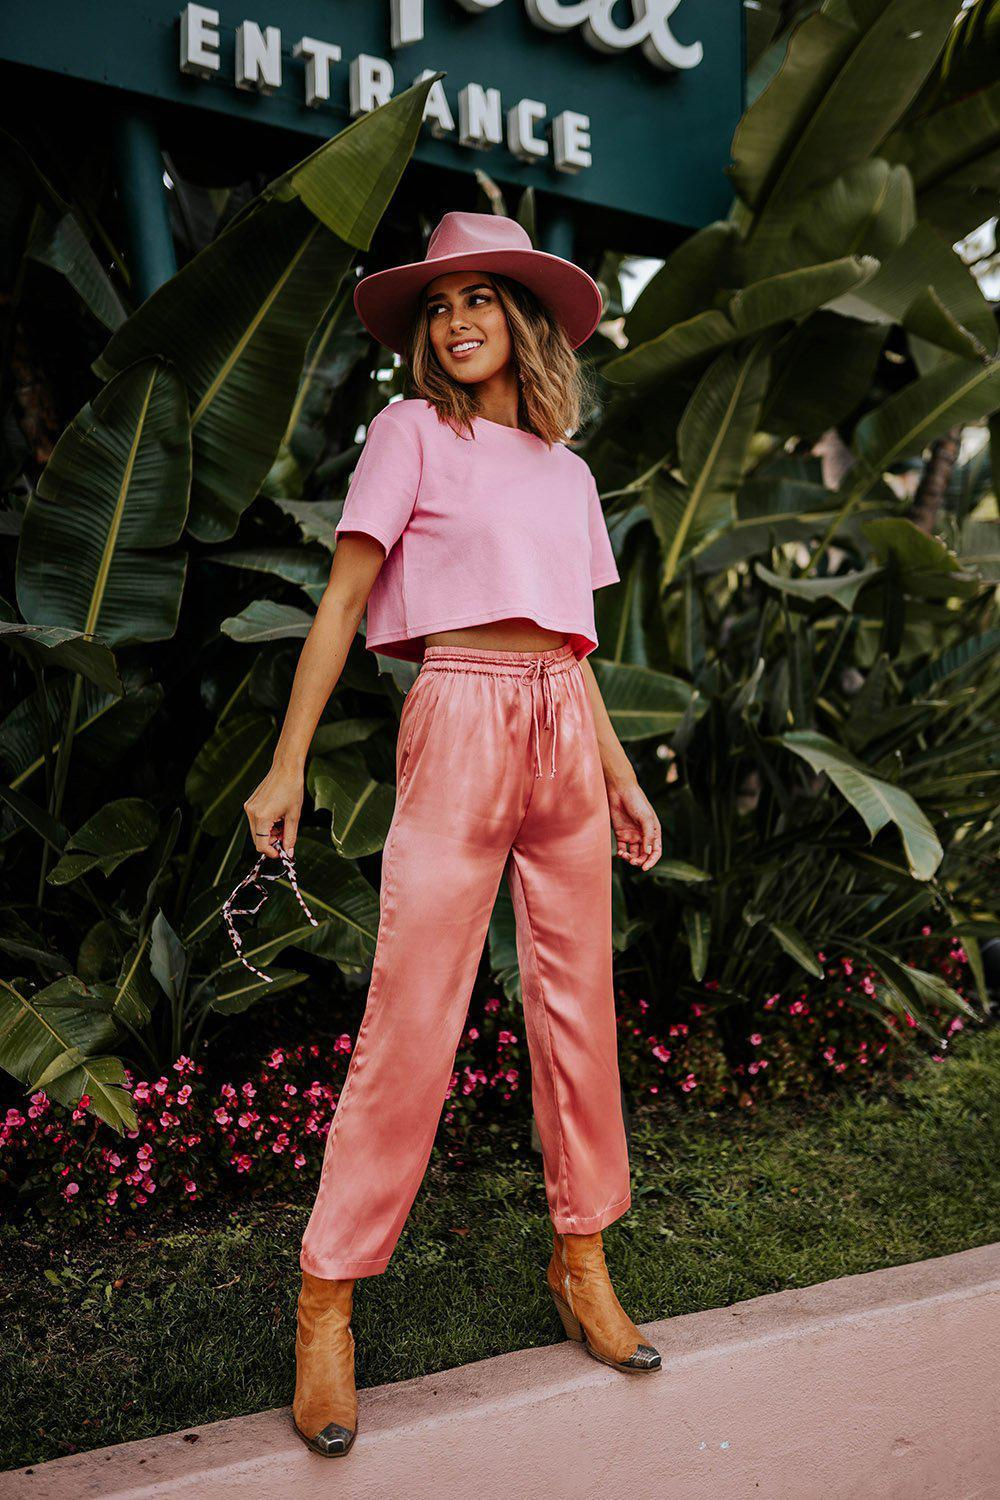 best_seller, Take Me Away Satin Pants in Rose, Bottom, women's clothing, dresses, skirts, coats, jackets, shoes, boots, tops, tee shirts, jeans, free people, levi's, rollas, jumpsuits, bottoms, tops, sweaters, pullovers, pants, shorts, sweats,.